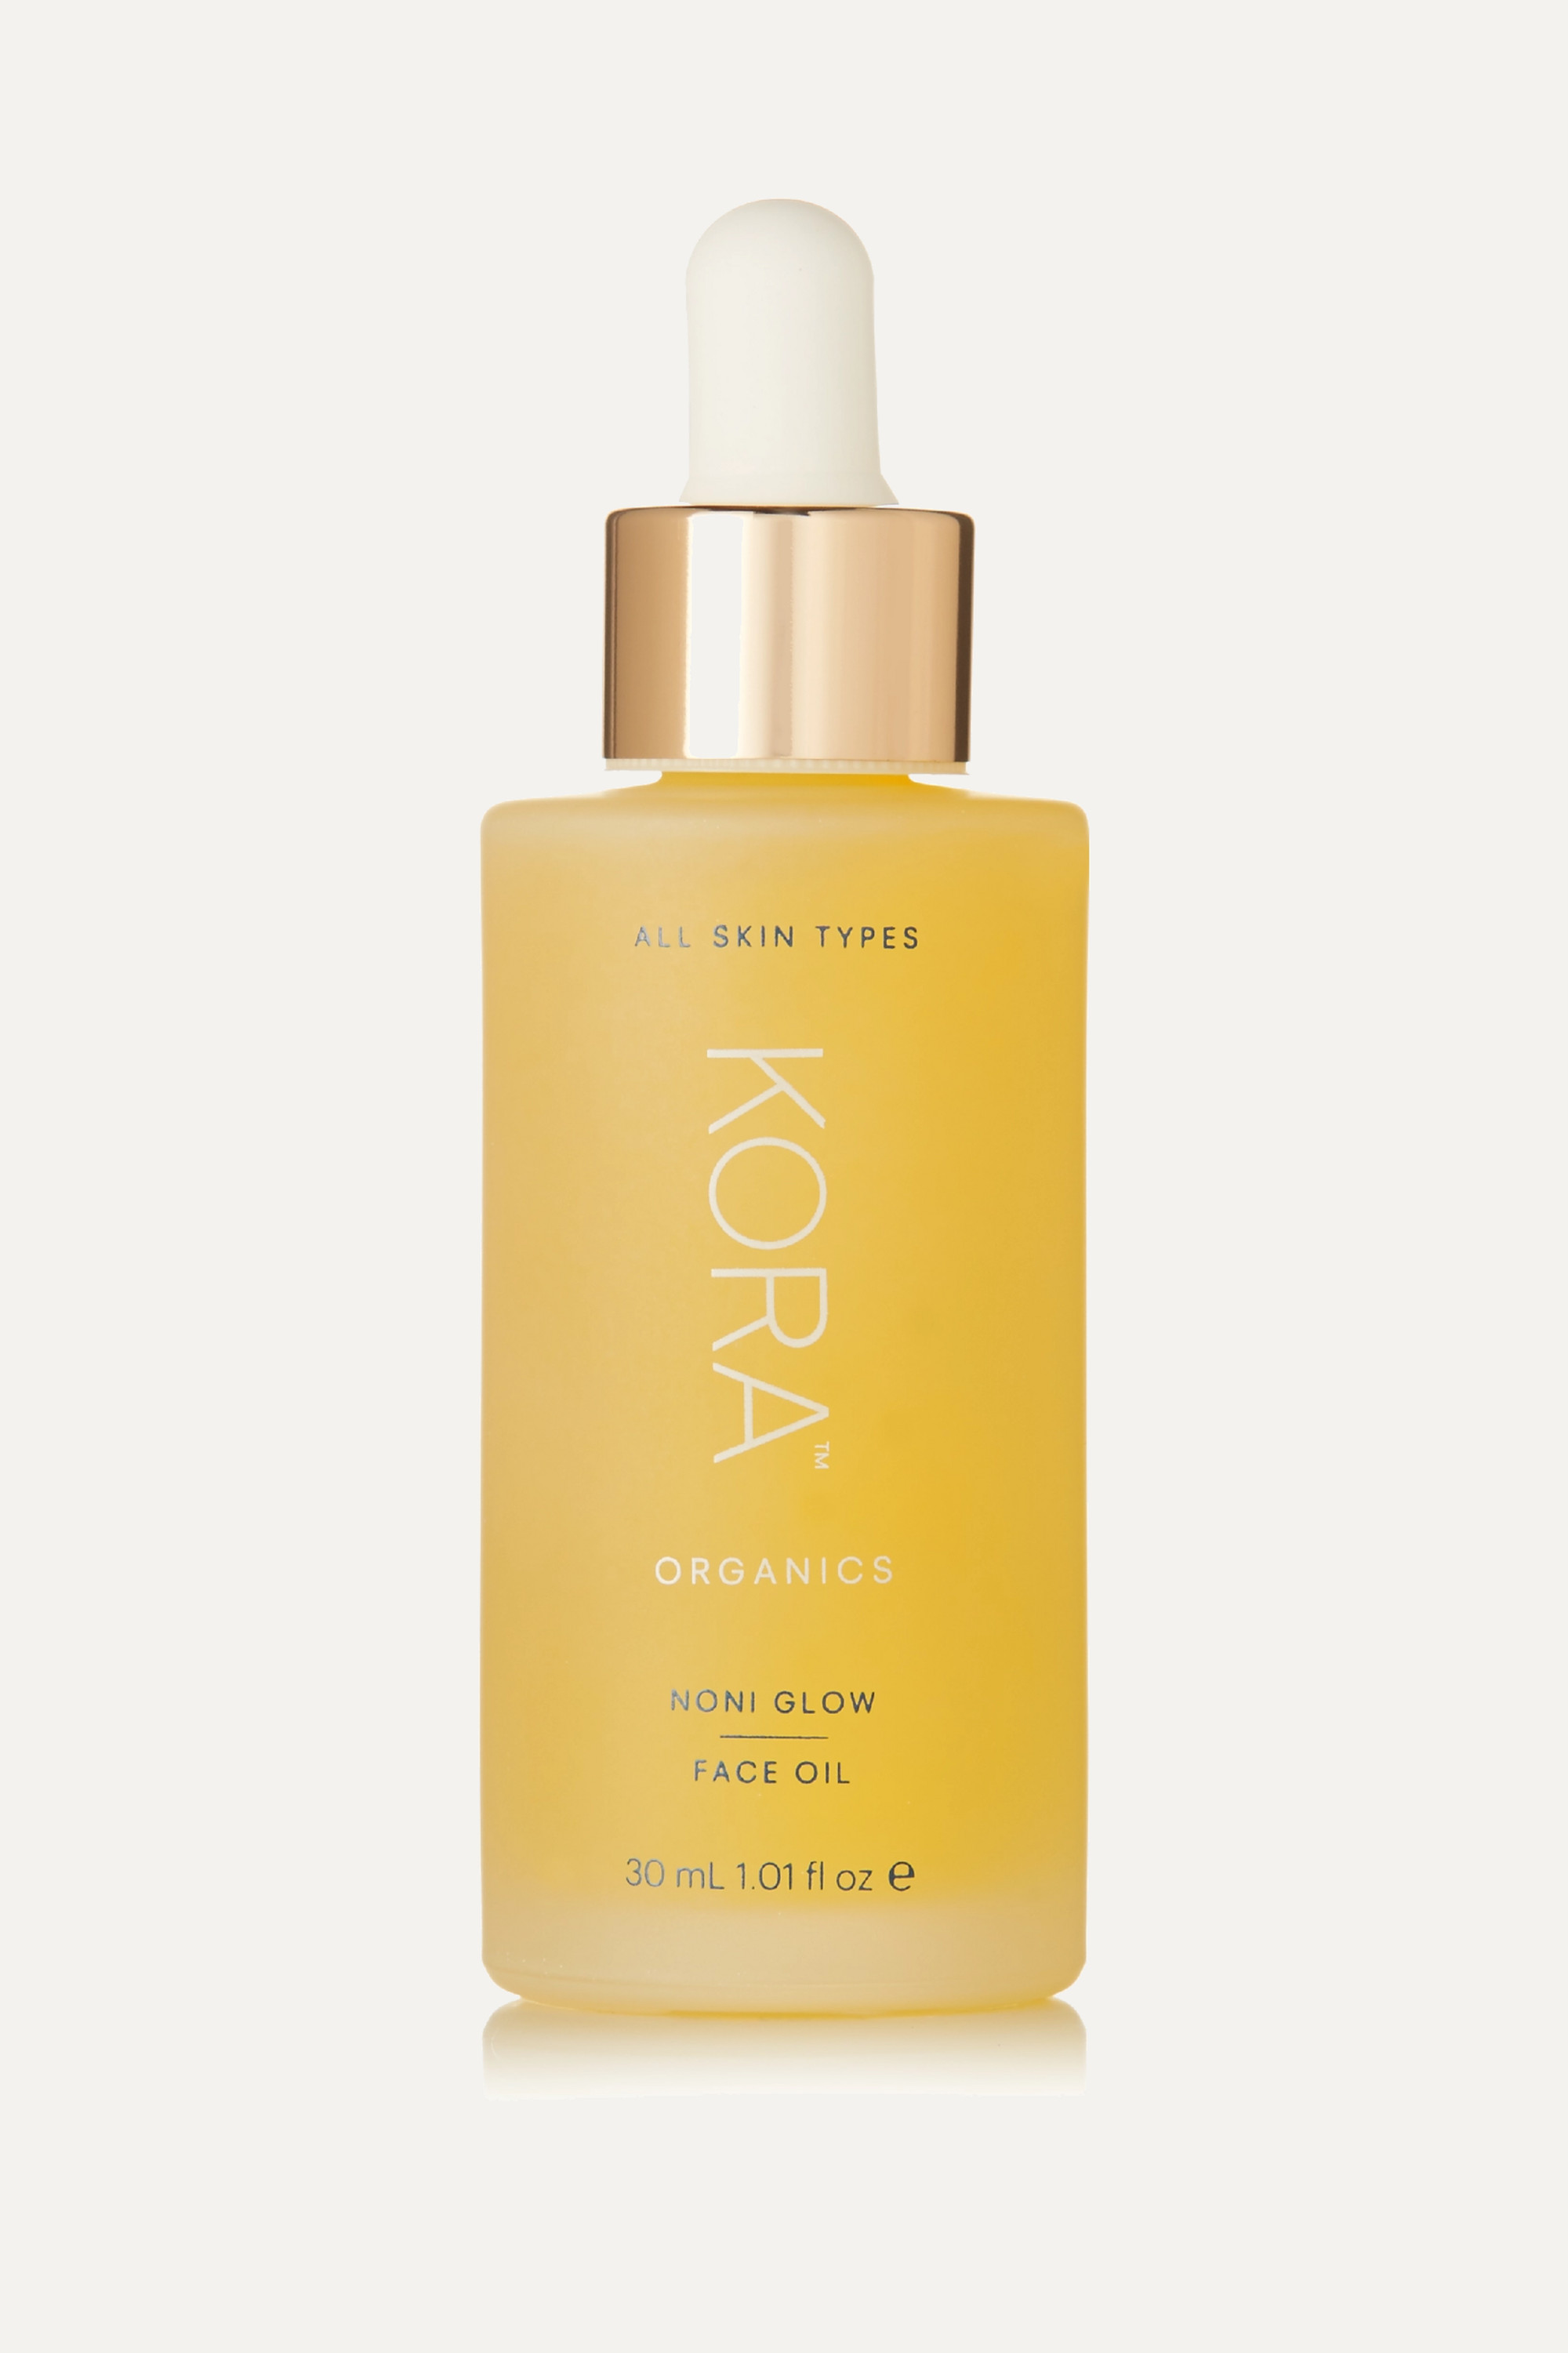 KORA Organics Noni Glow Face Oil, 30ml